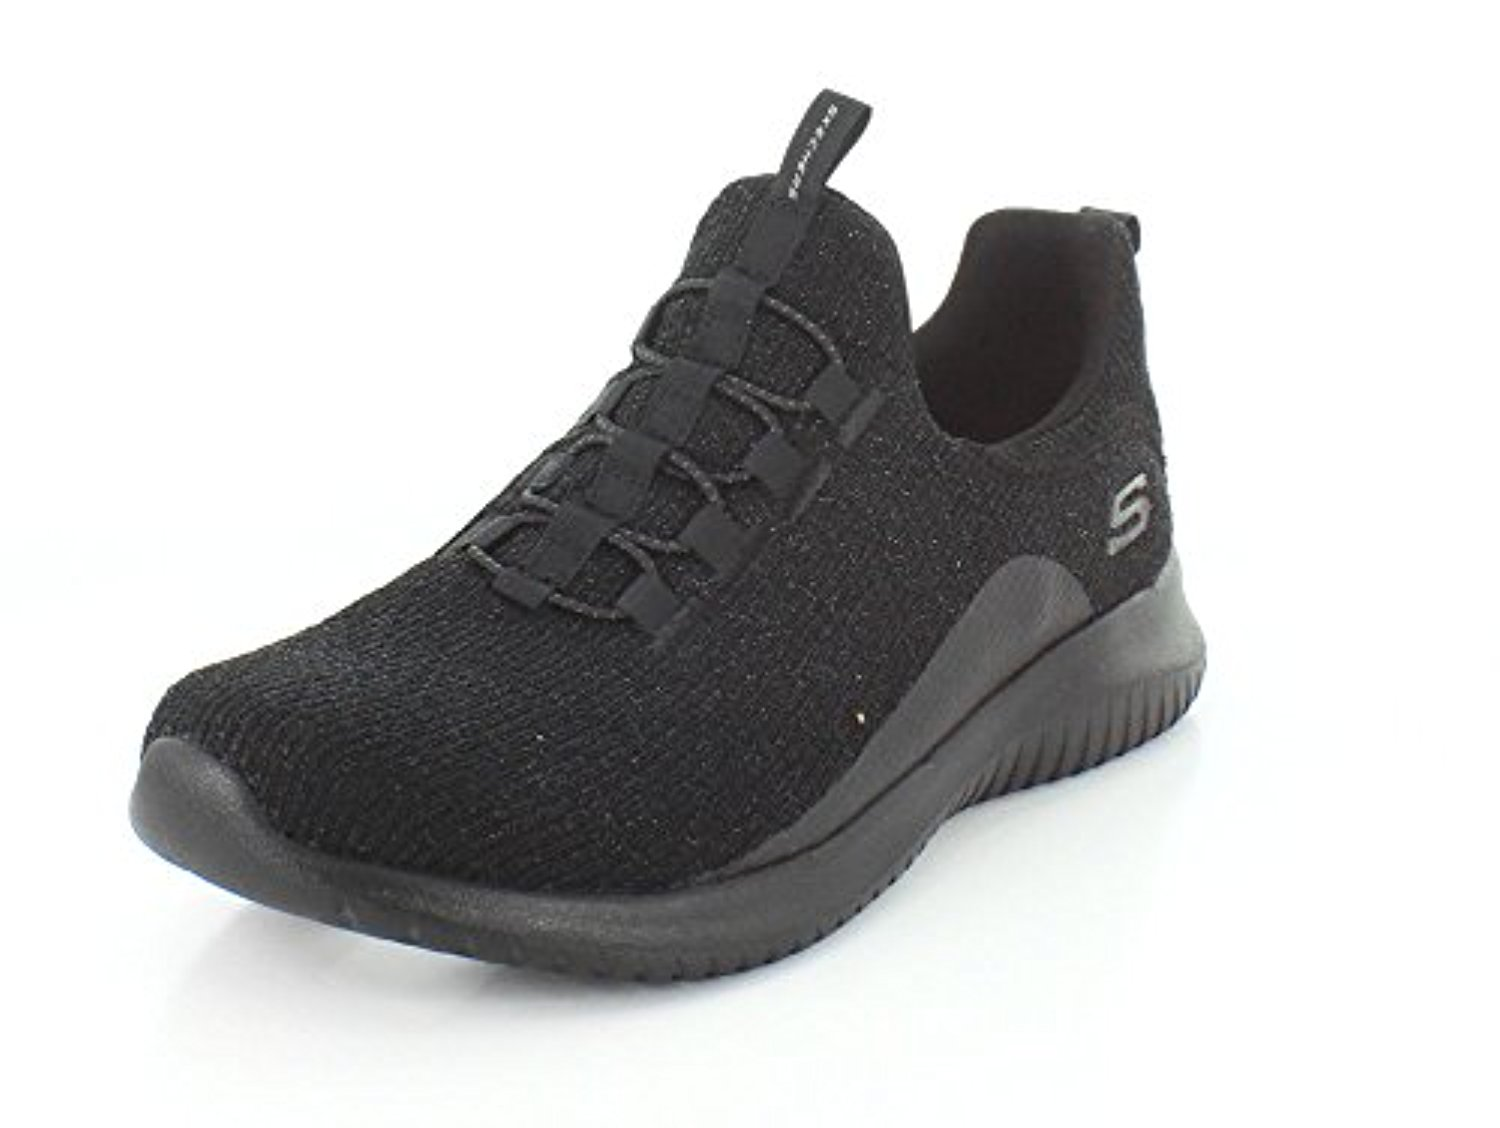 12830 BBK Black Skechers Shoe Memory Foam Women Slip On Comfort Casual Knit Mesh 12830BBK by Skechers